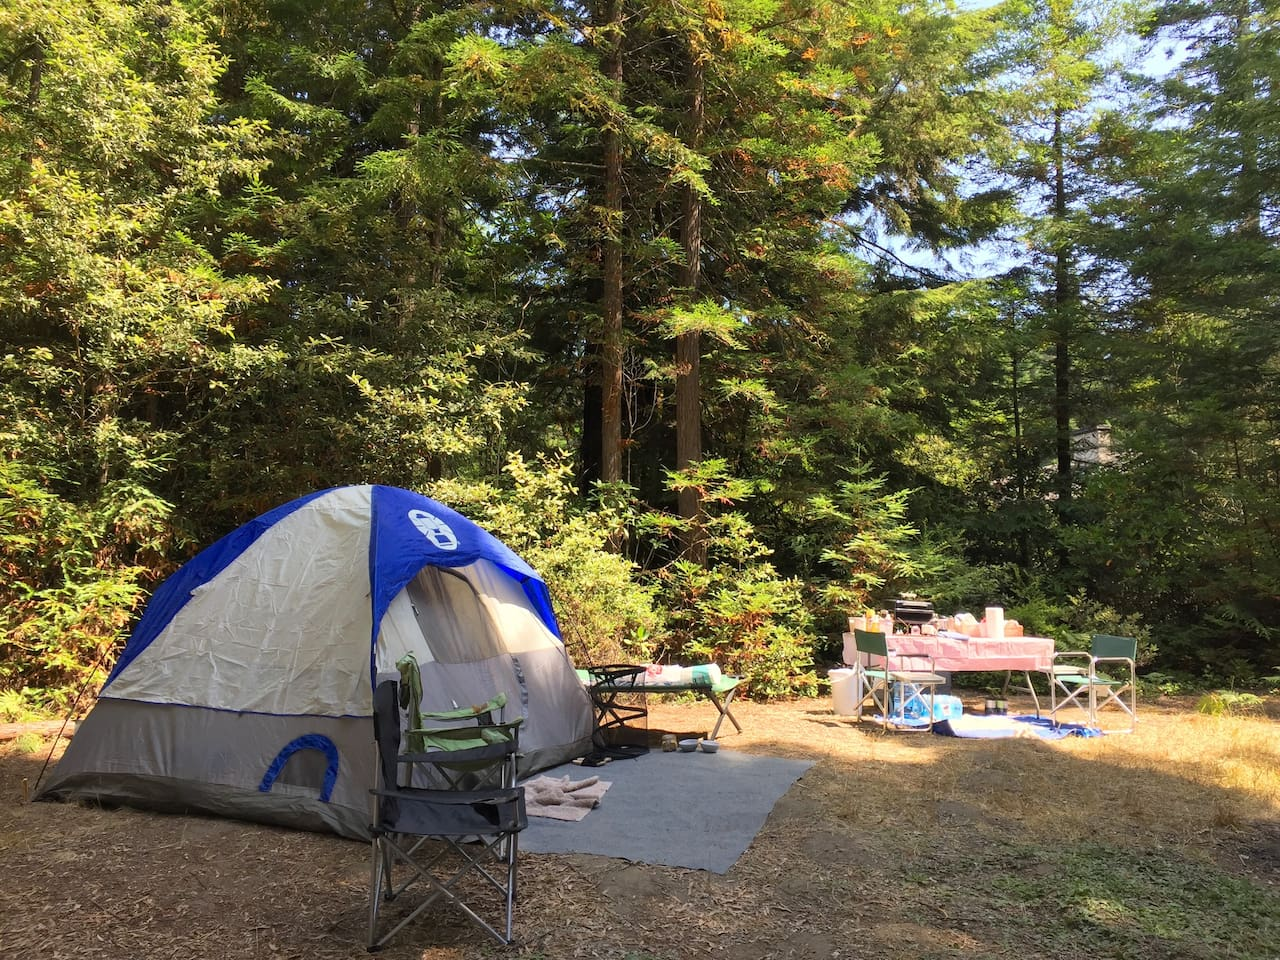 Welcome to private tent camping, small RV or camper van parking amongst the redwoods one mile from Mendocino Village.